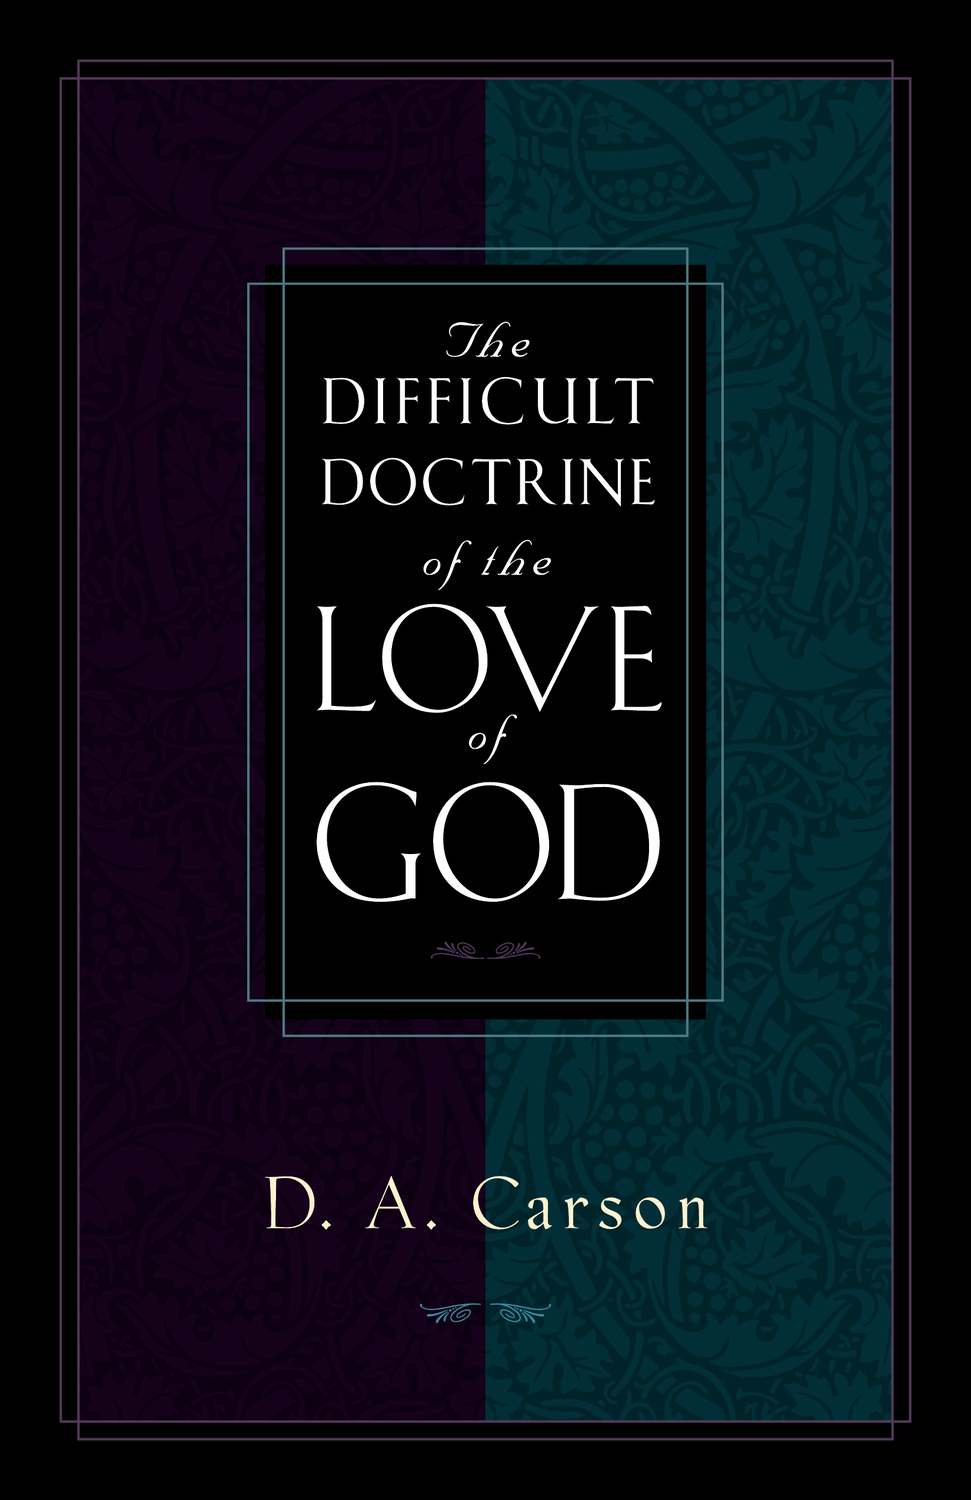 The Difficult Doctrine of the Love of God